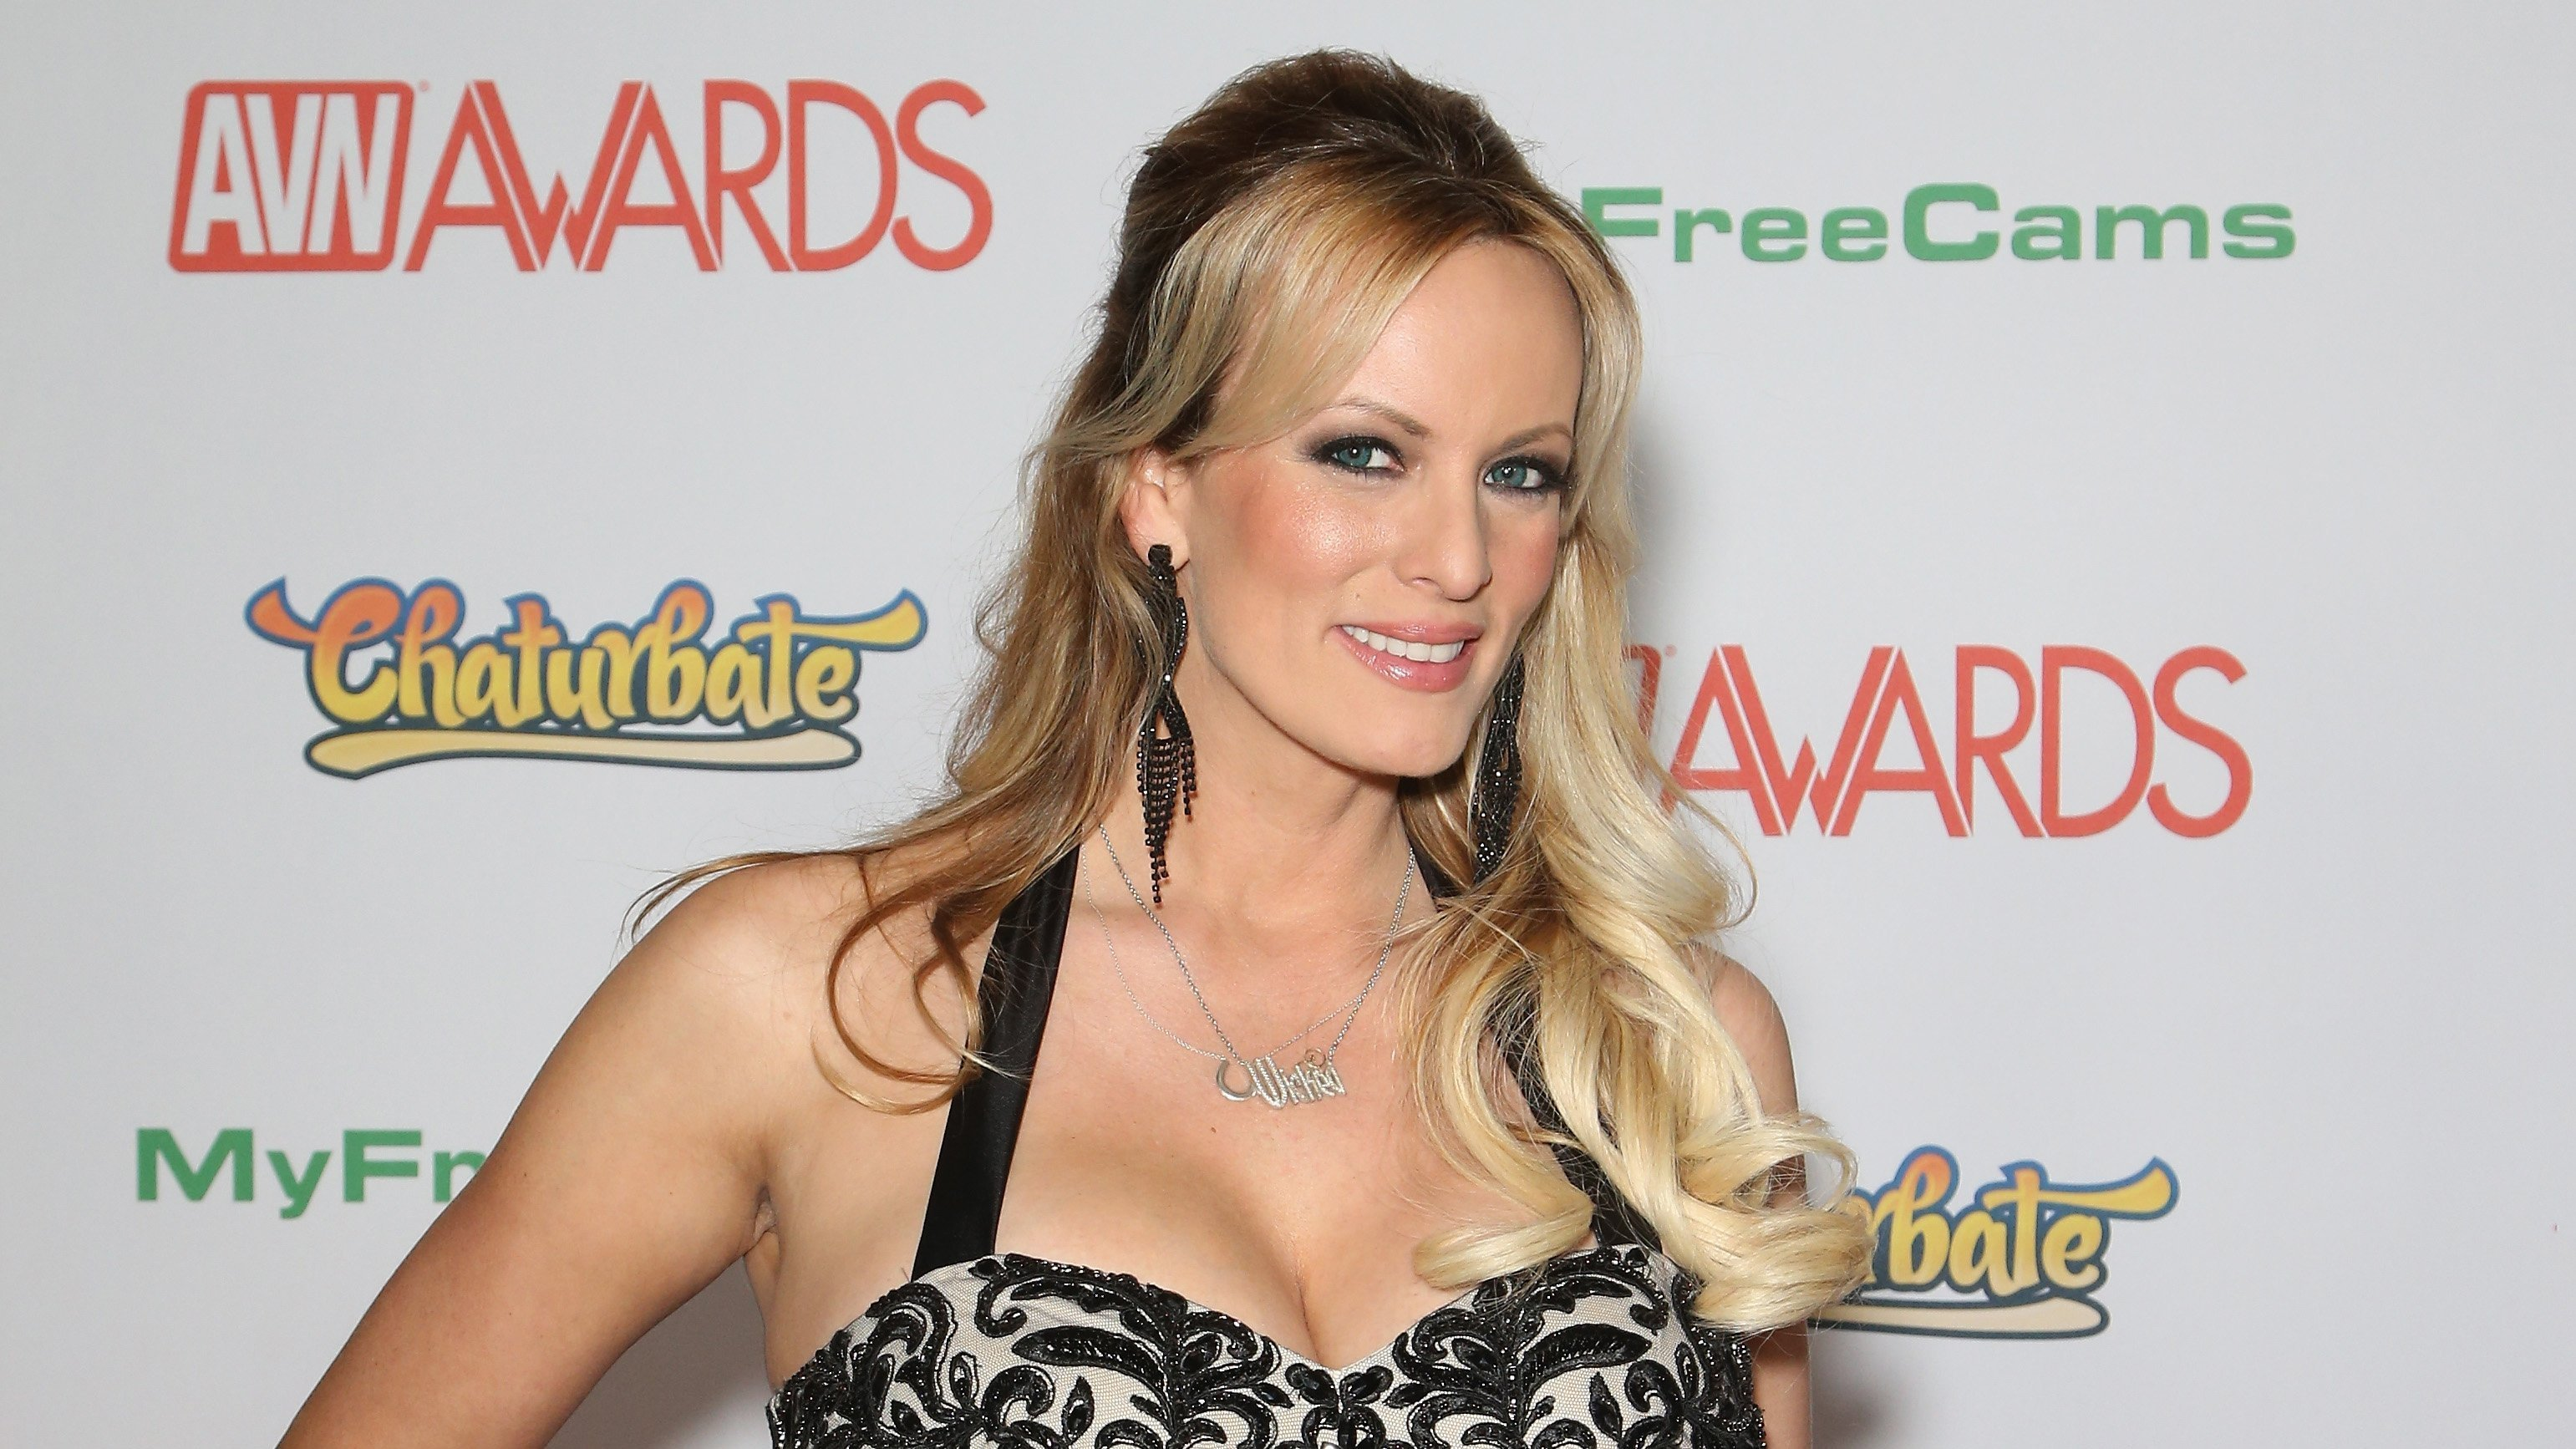 A new lawsuit filed by the porn star known as Stormy Daniels claims President Donald Trump never signed a hush agreement regarding an alleged sexual encounter between the two and therefore the agreement is void.